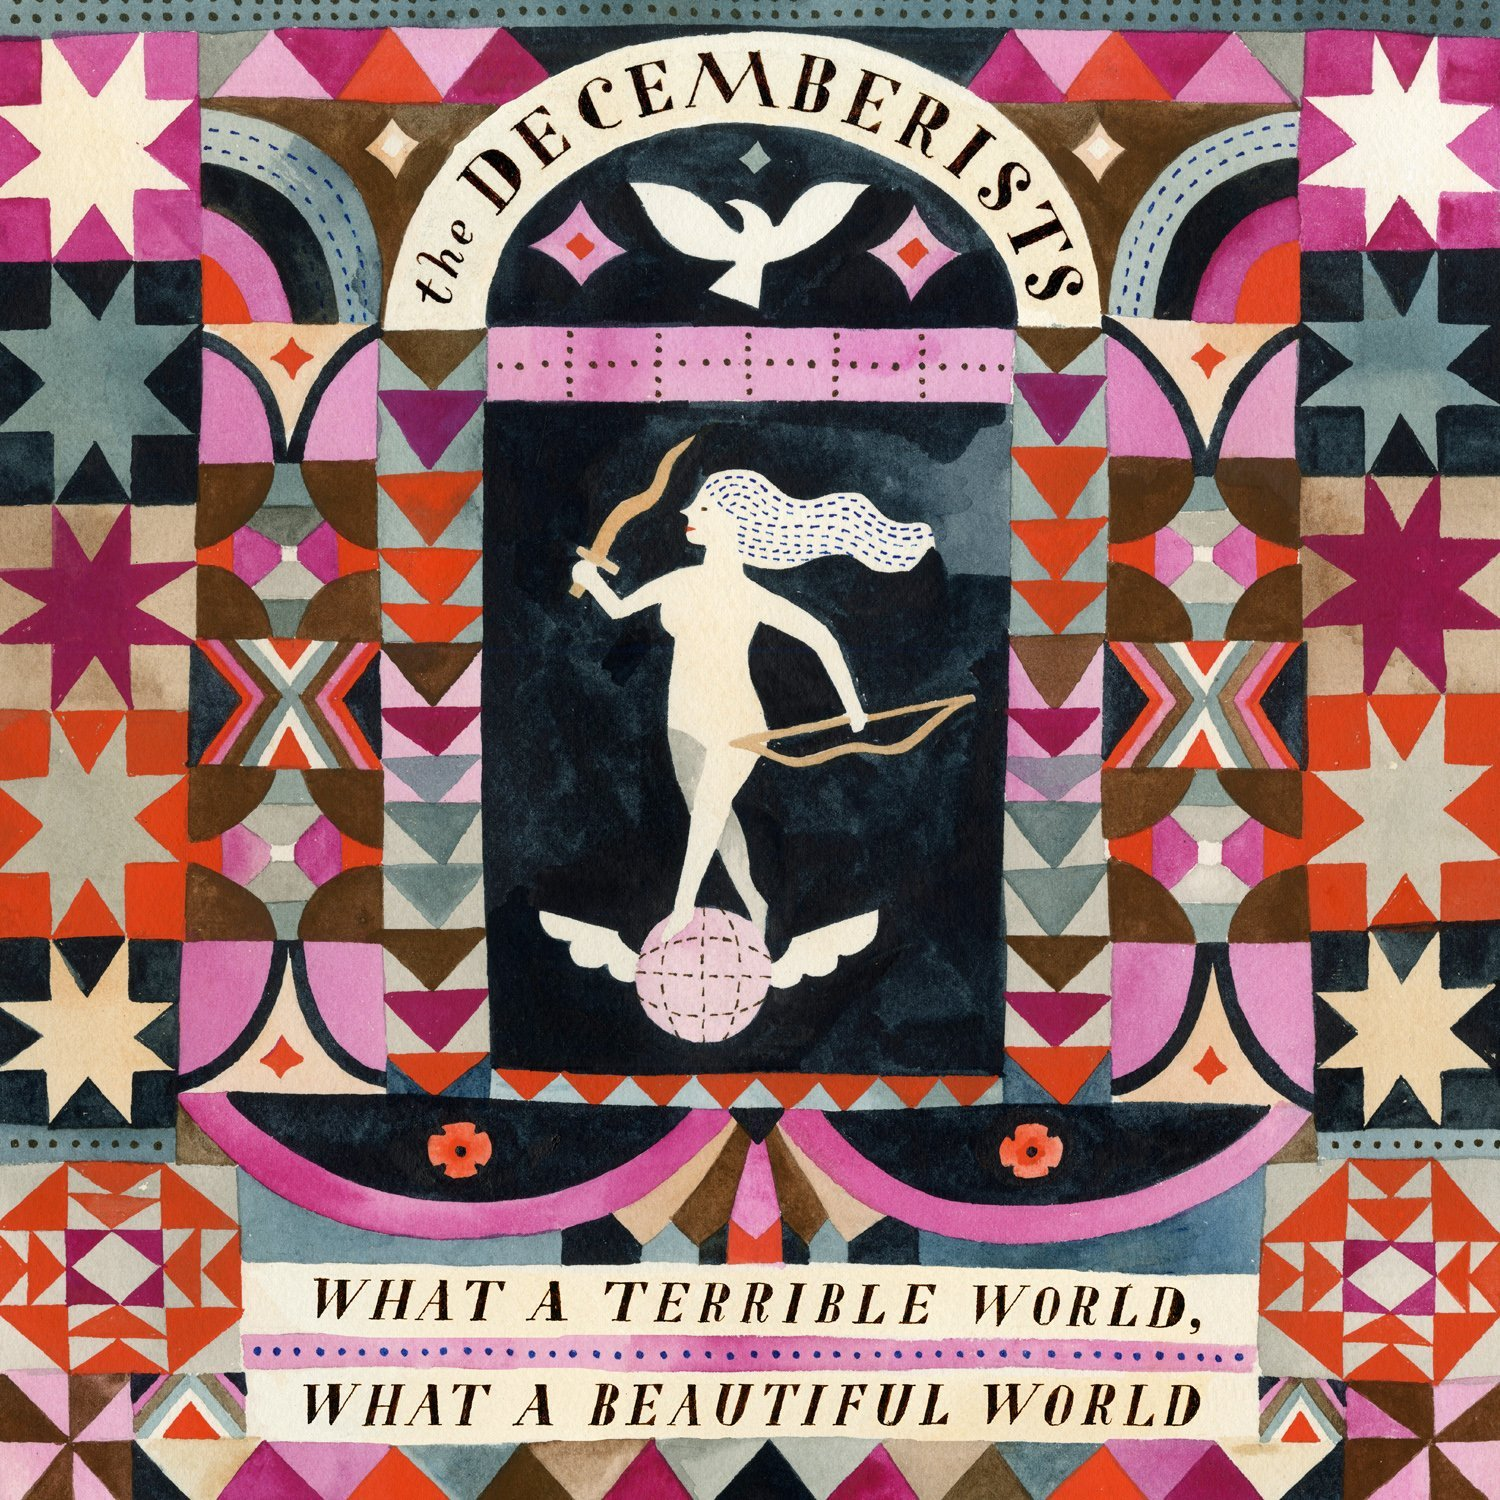 decemberists-what-a-terrible-world